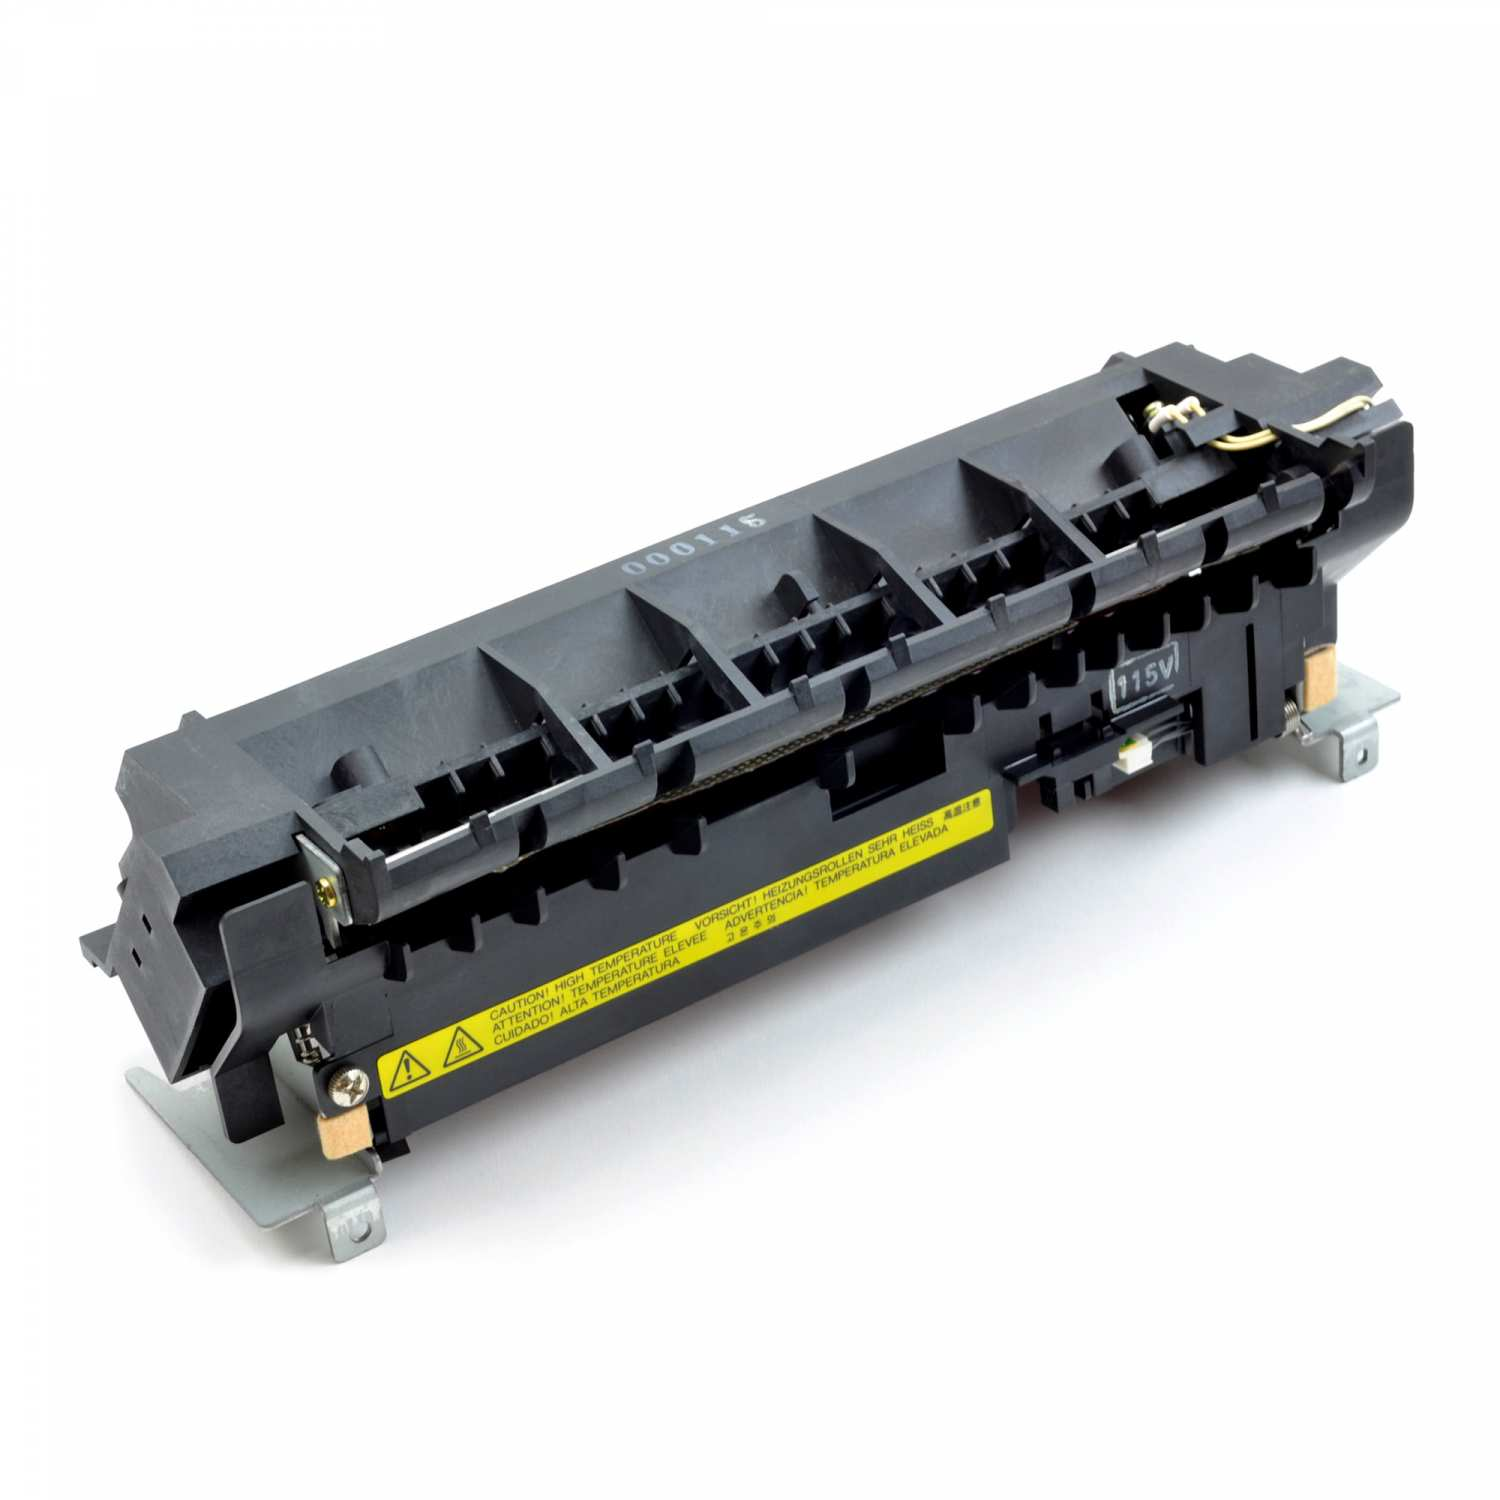 108R00092-AEX Fuser Assembly (110V) Exchange for Xerox 4317, DocuPrint 4517